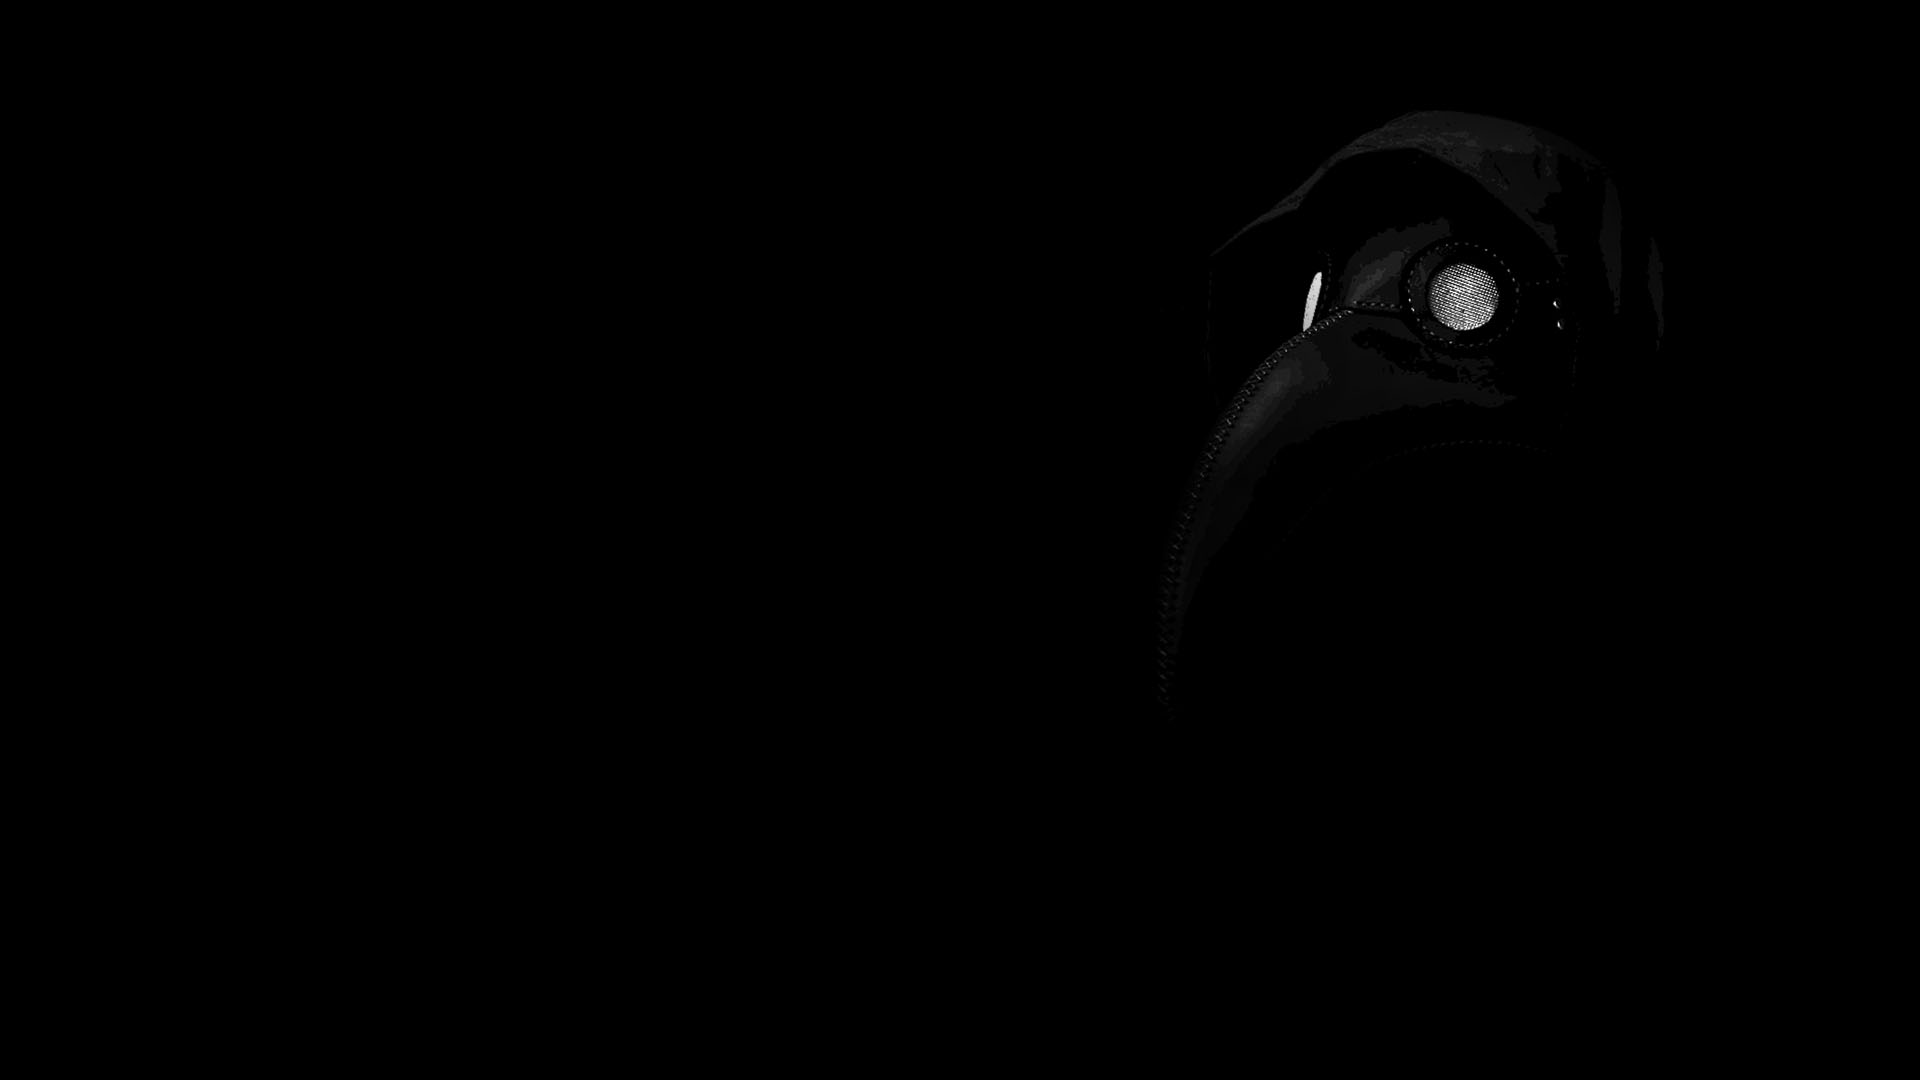 Mobile Wallpapers Hd For Samsung Free Stock Photo Of Black Dark Mask